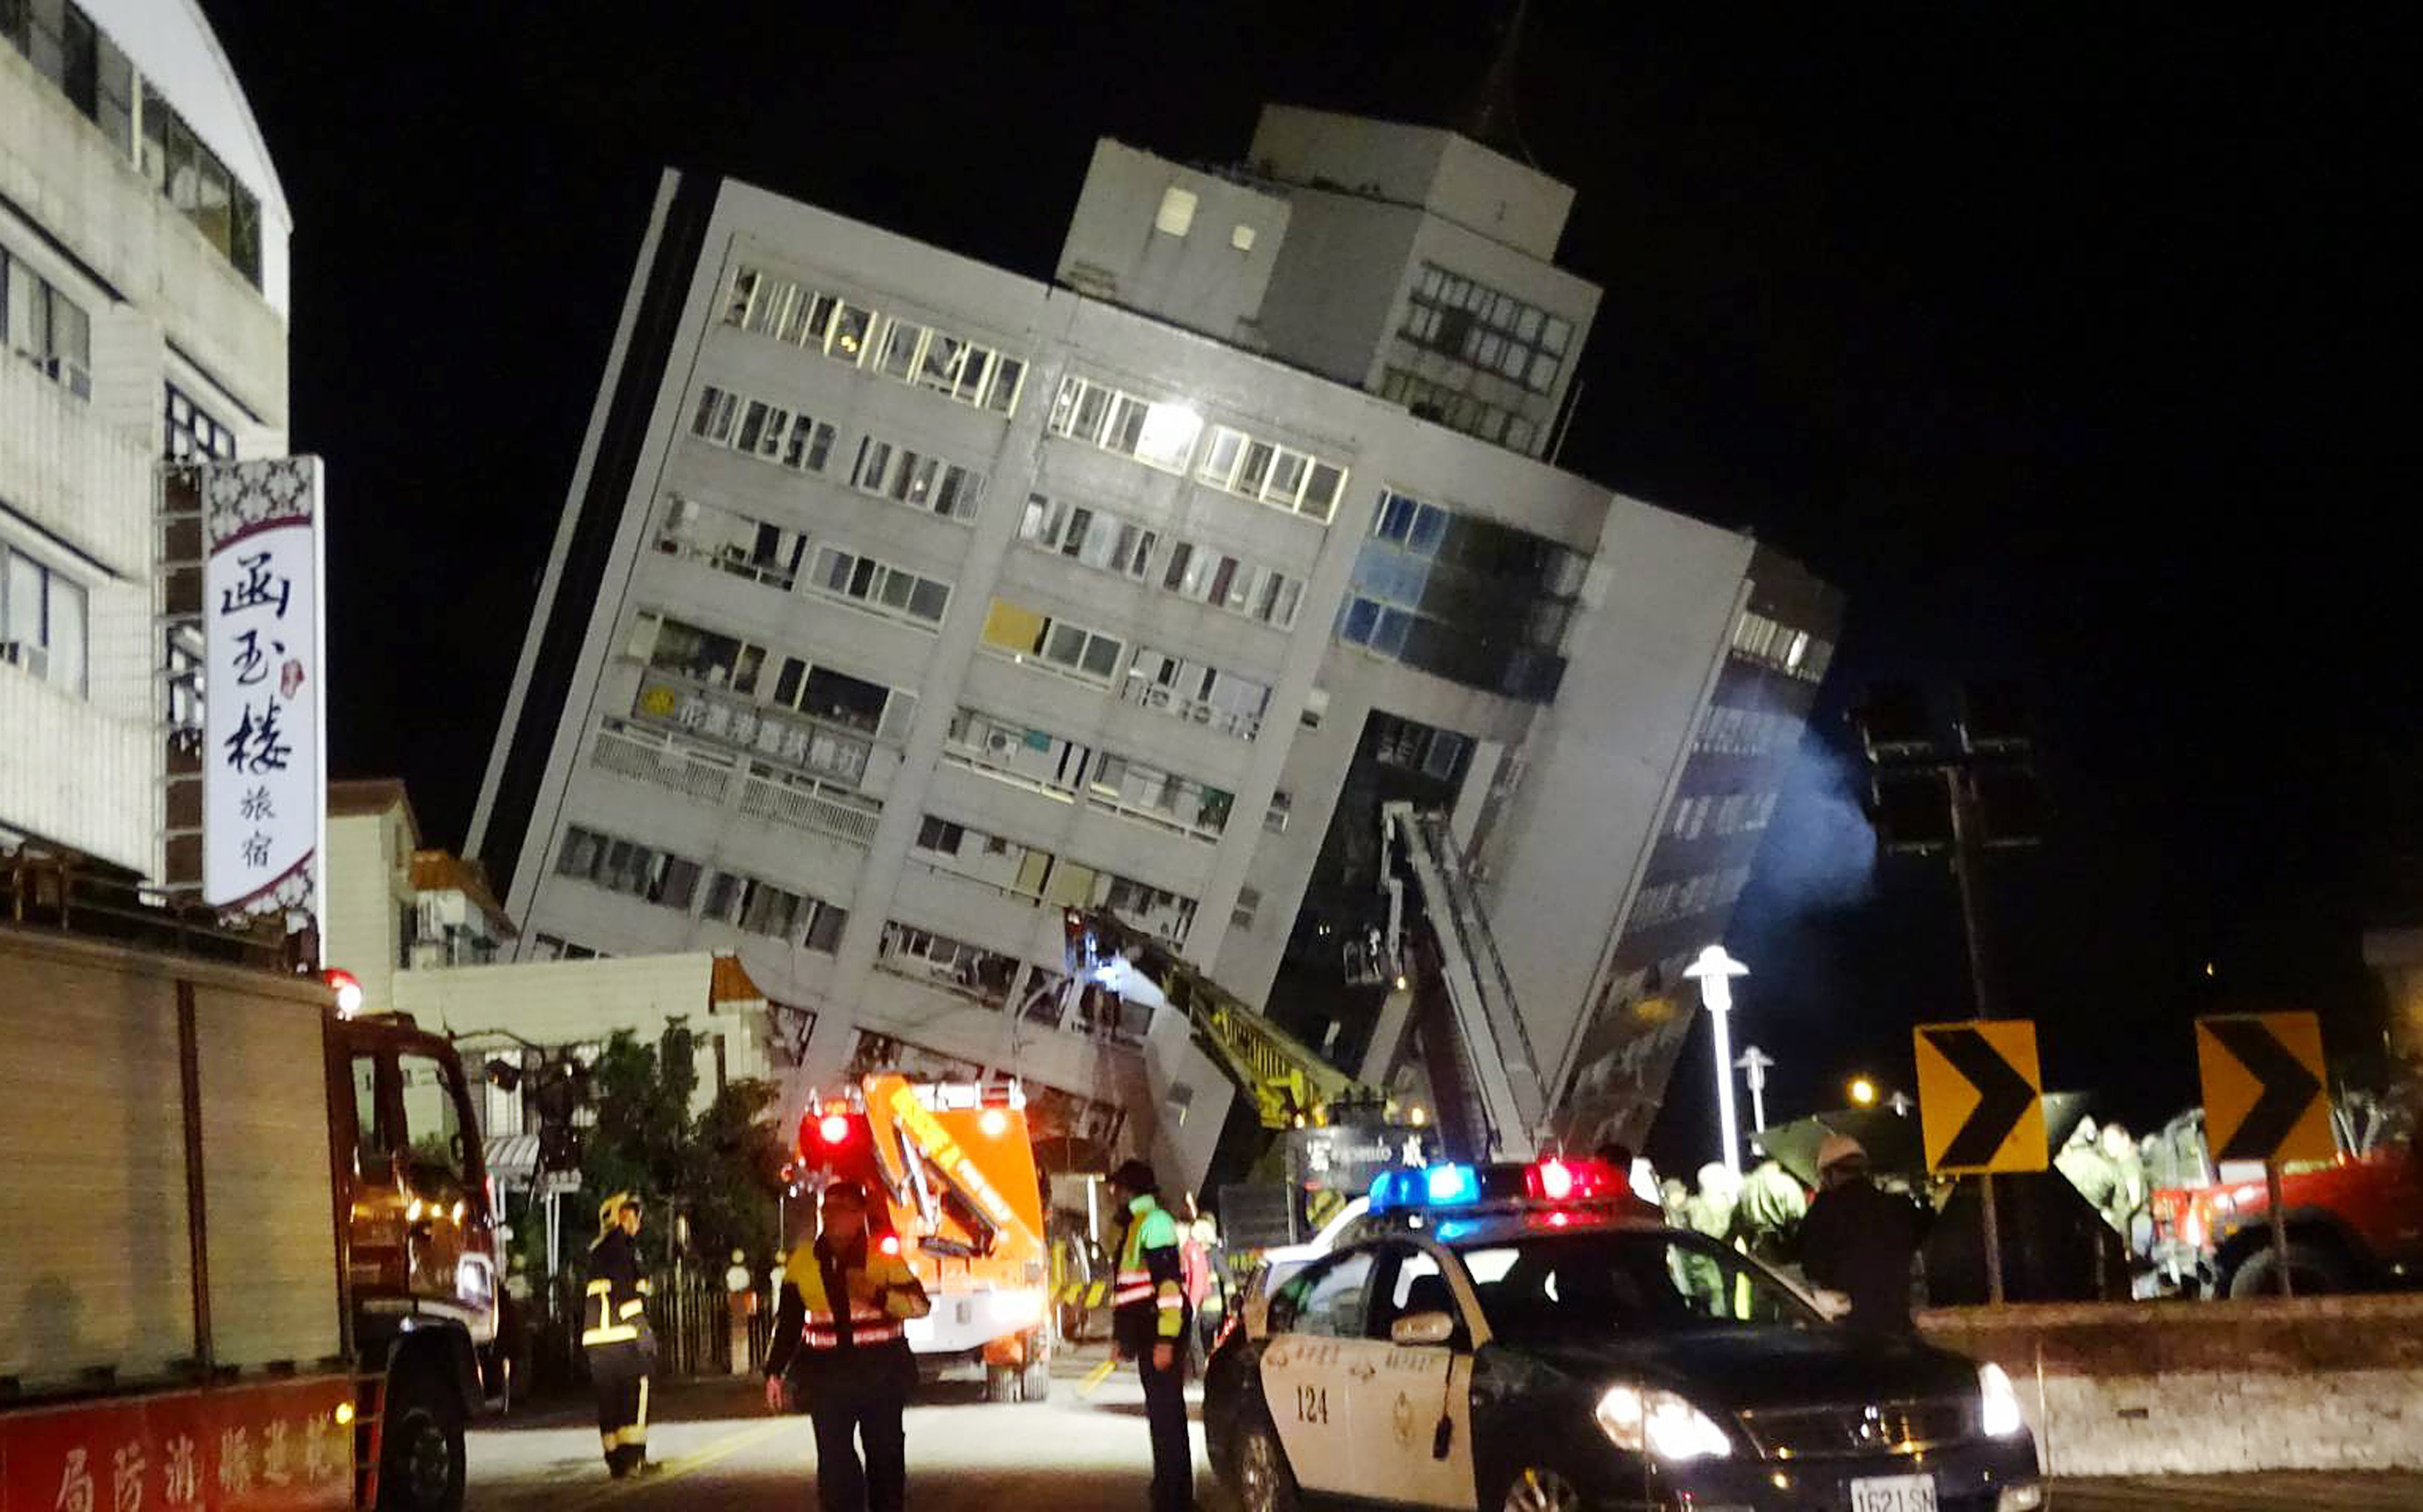 Rescuers are seen entering a building that collapsed onto its side from an early morning 6.4 magnitude earthquake in Hualien County, eastern Taiwan (AP/PTI)